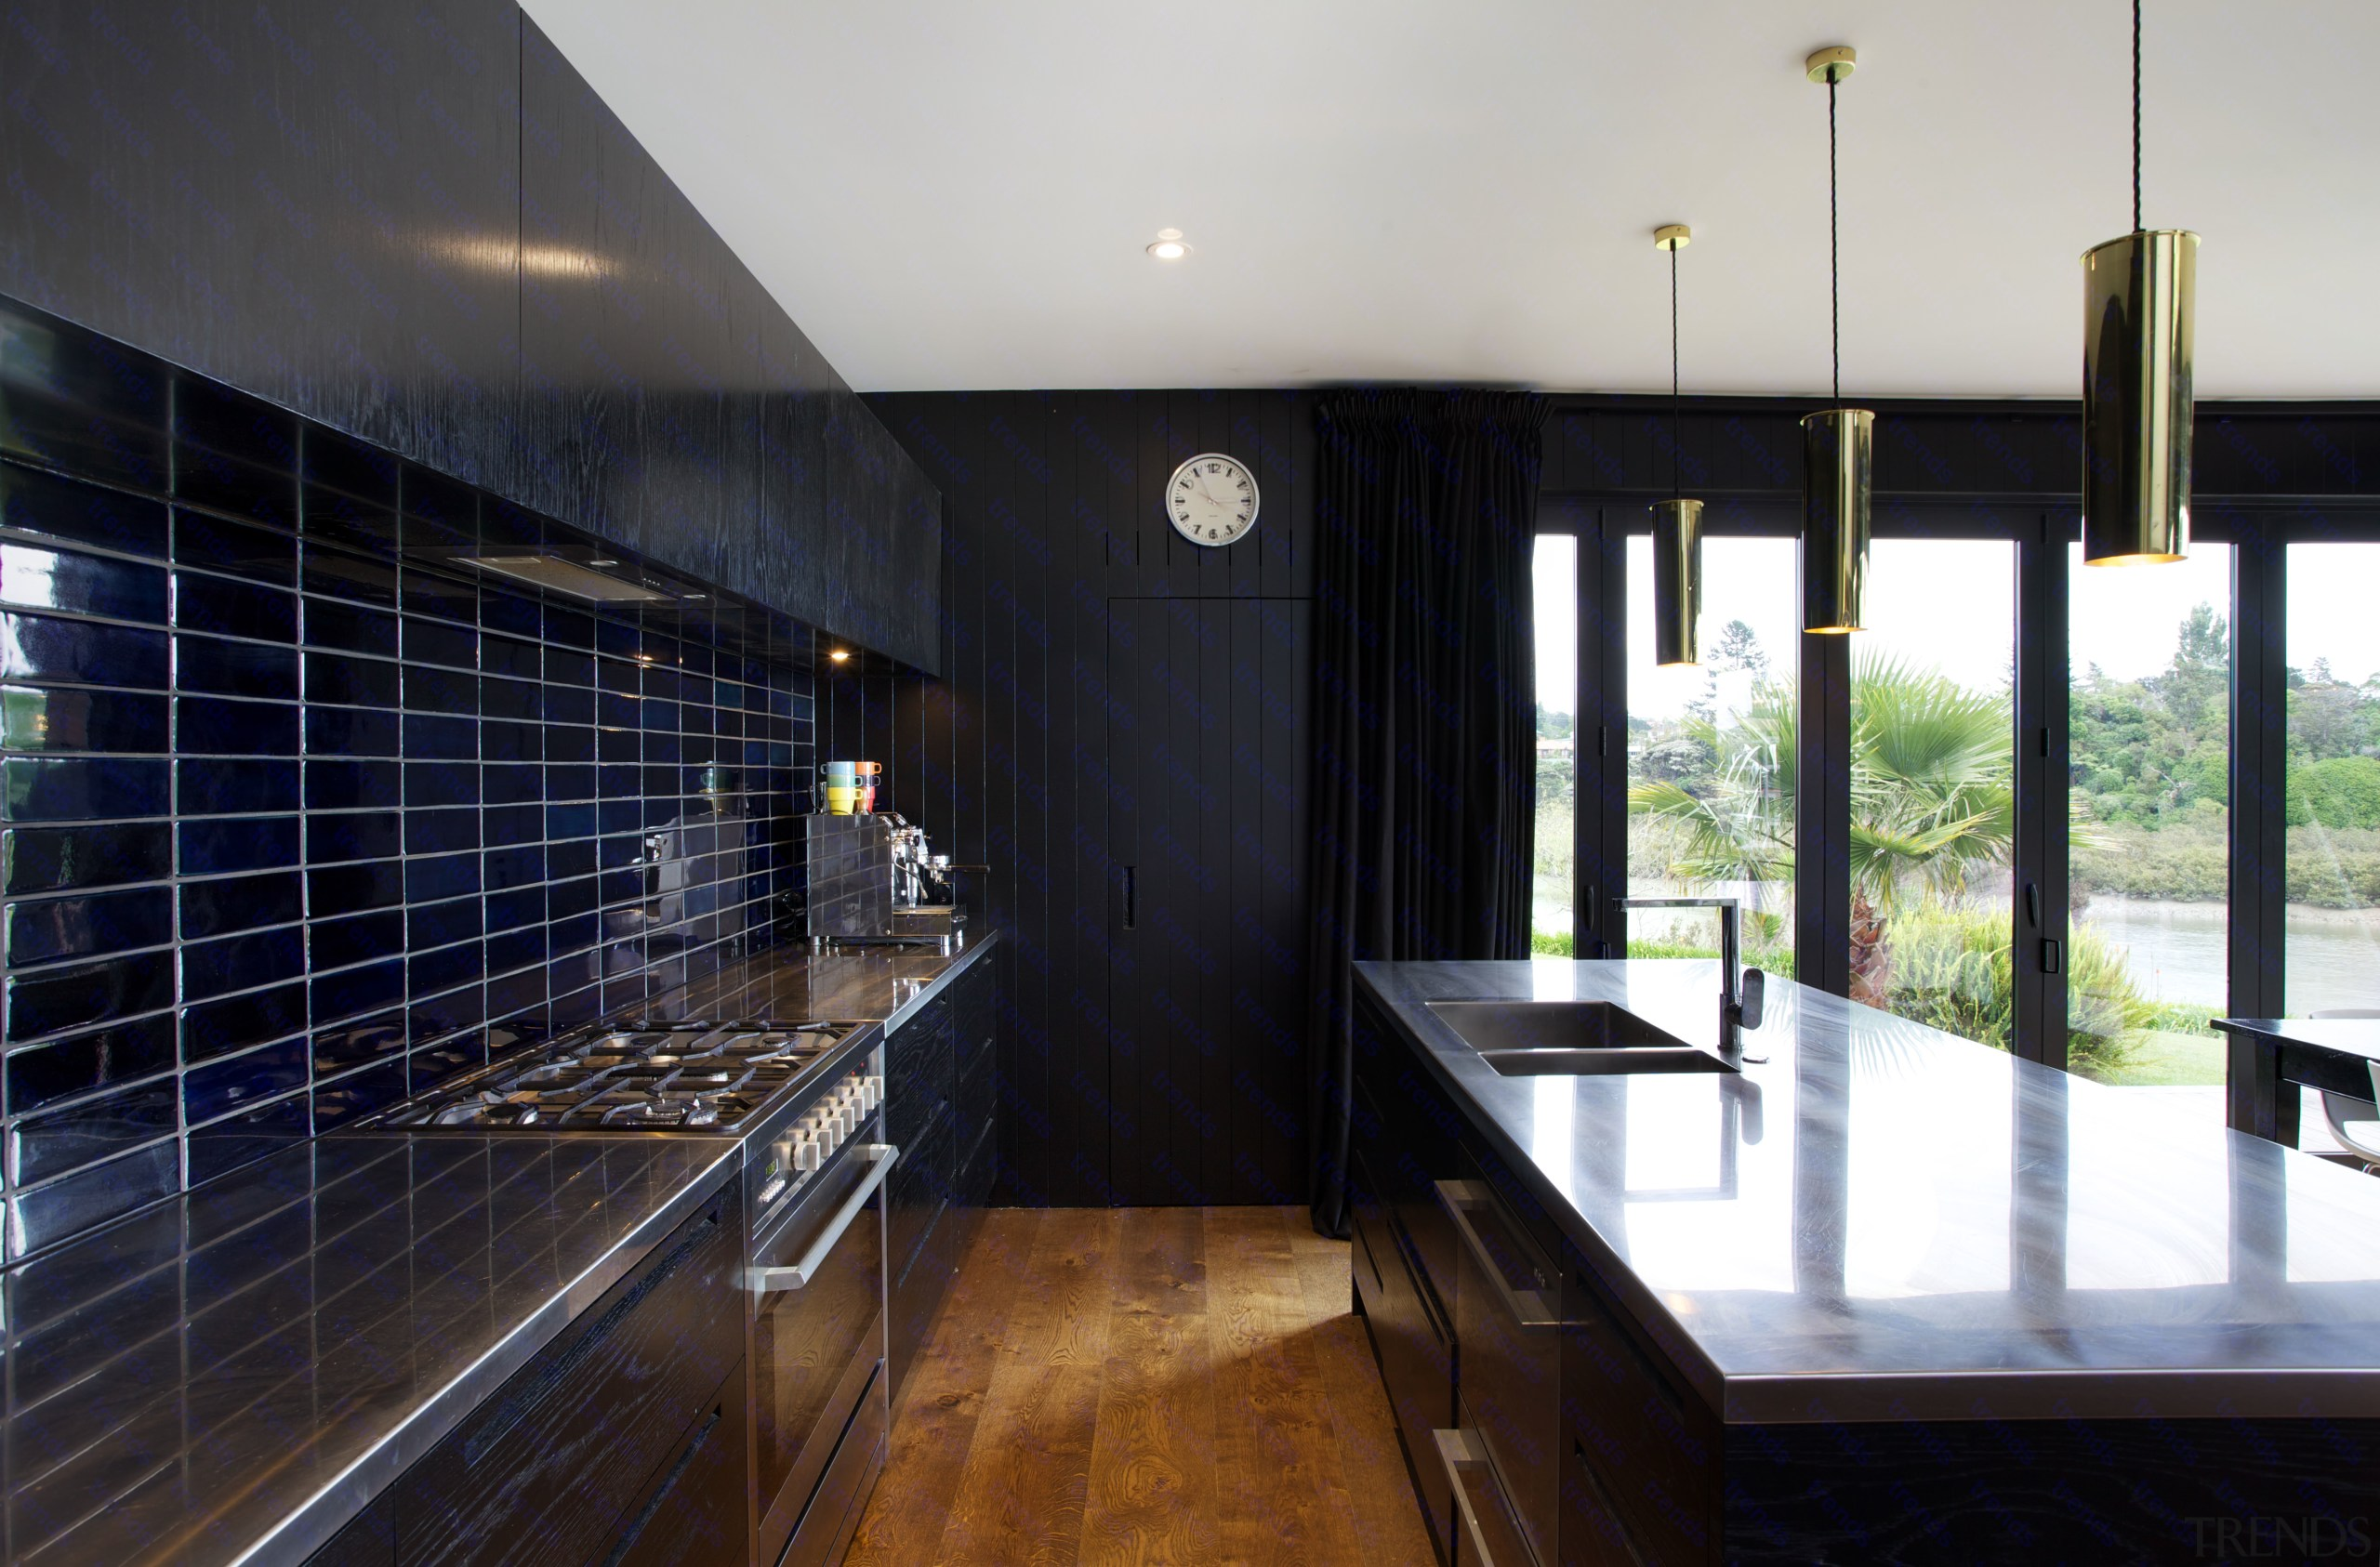 Hand-glazed tiles in varying shades of inky blue architecture, countertop, house, interior design, real estate, window, black